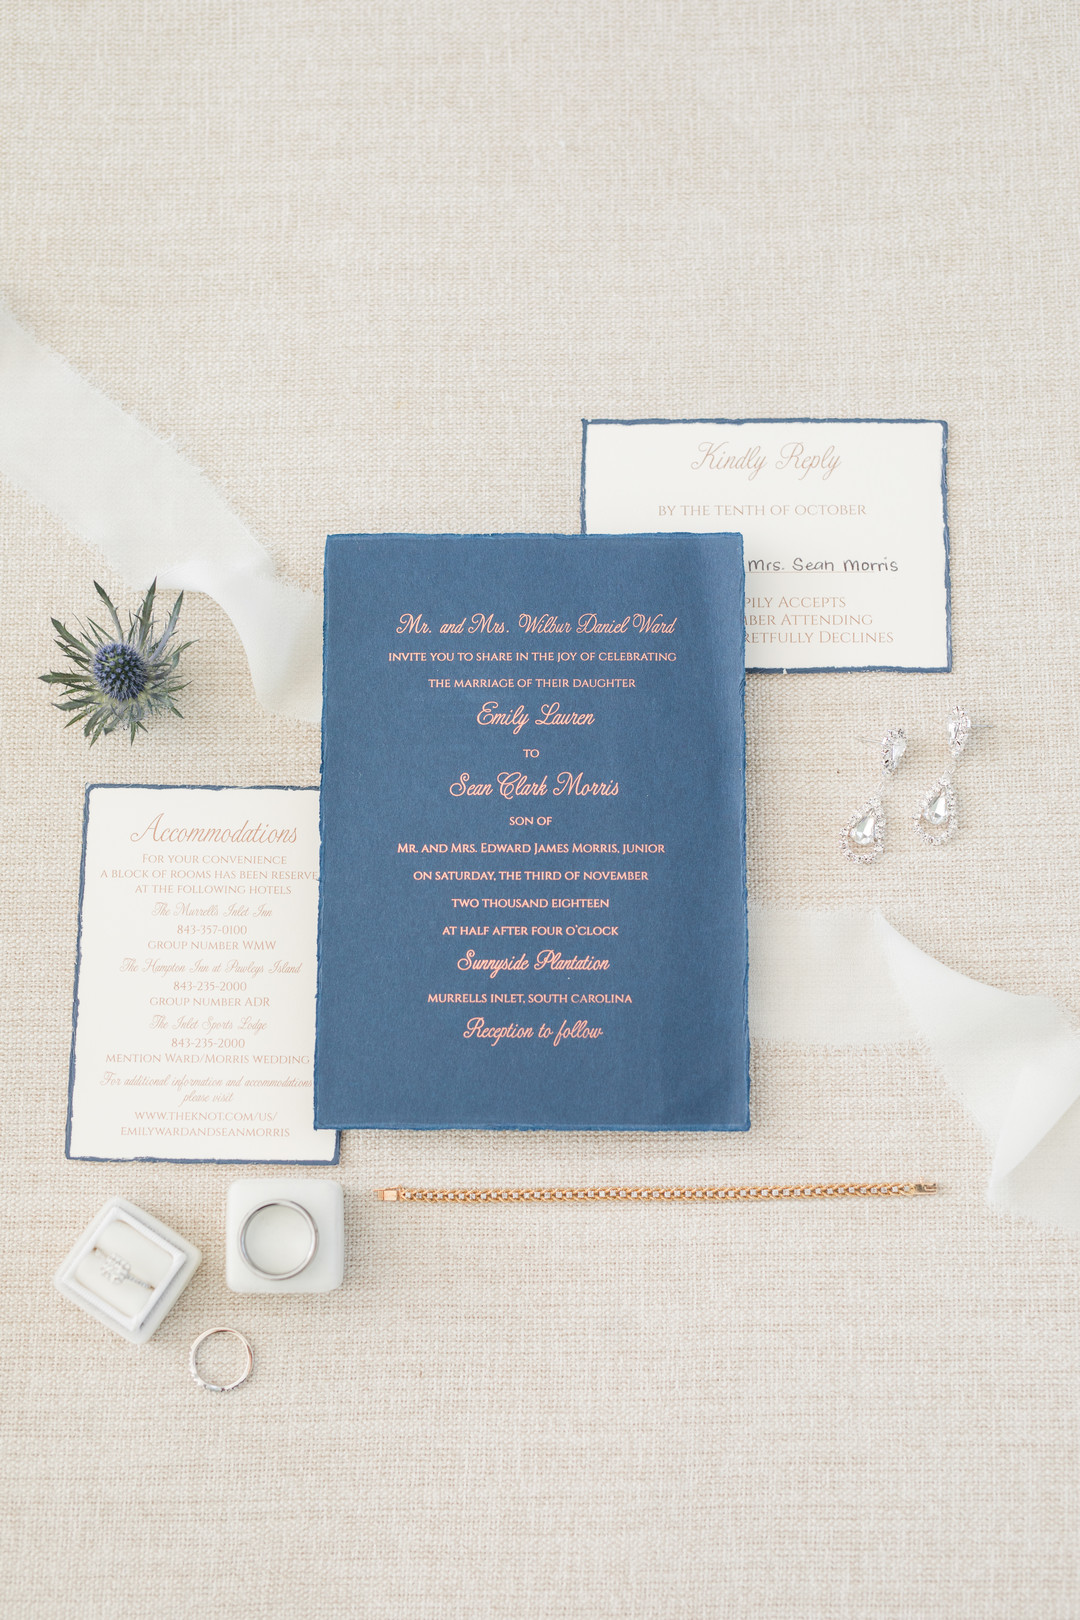 Sunnyside Plantation Wedding invitation